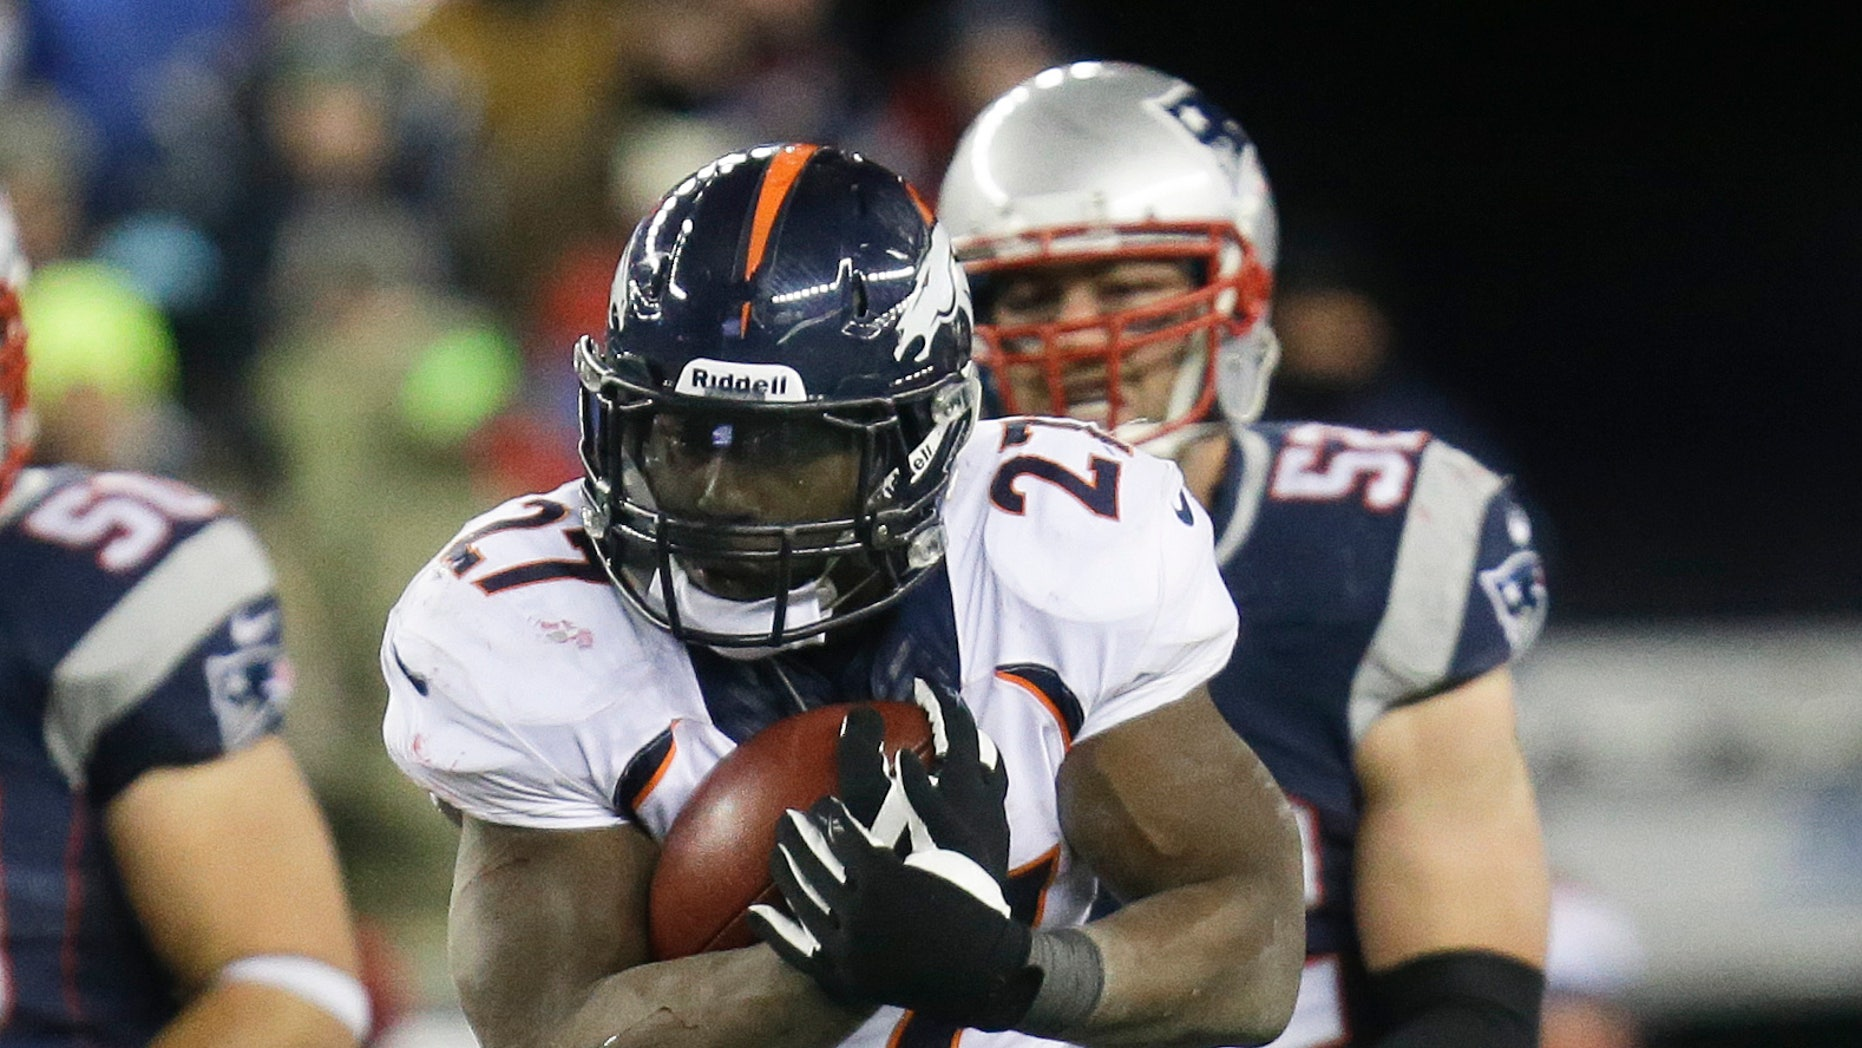 Denver Broncos running back Knowshon Moreno runs against the New England Patriots during overtime of an NFL football game Sunday, Nov. 24, 2013, in Foxborough, Mass. The Patriots won 34-31 in overtime. (AP Photo/Steven Senne)